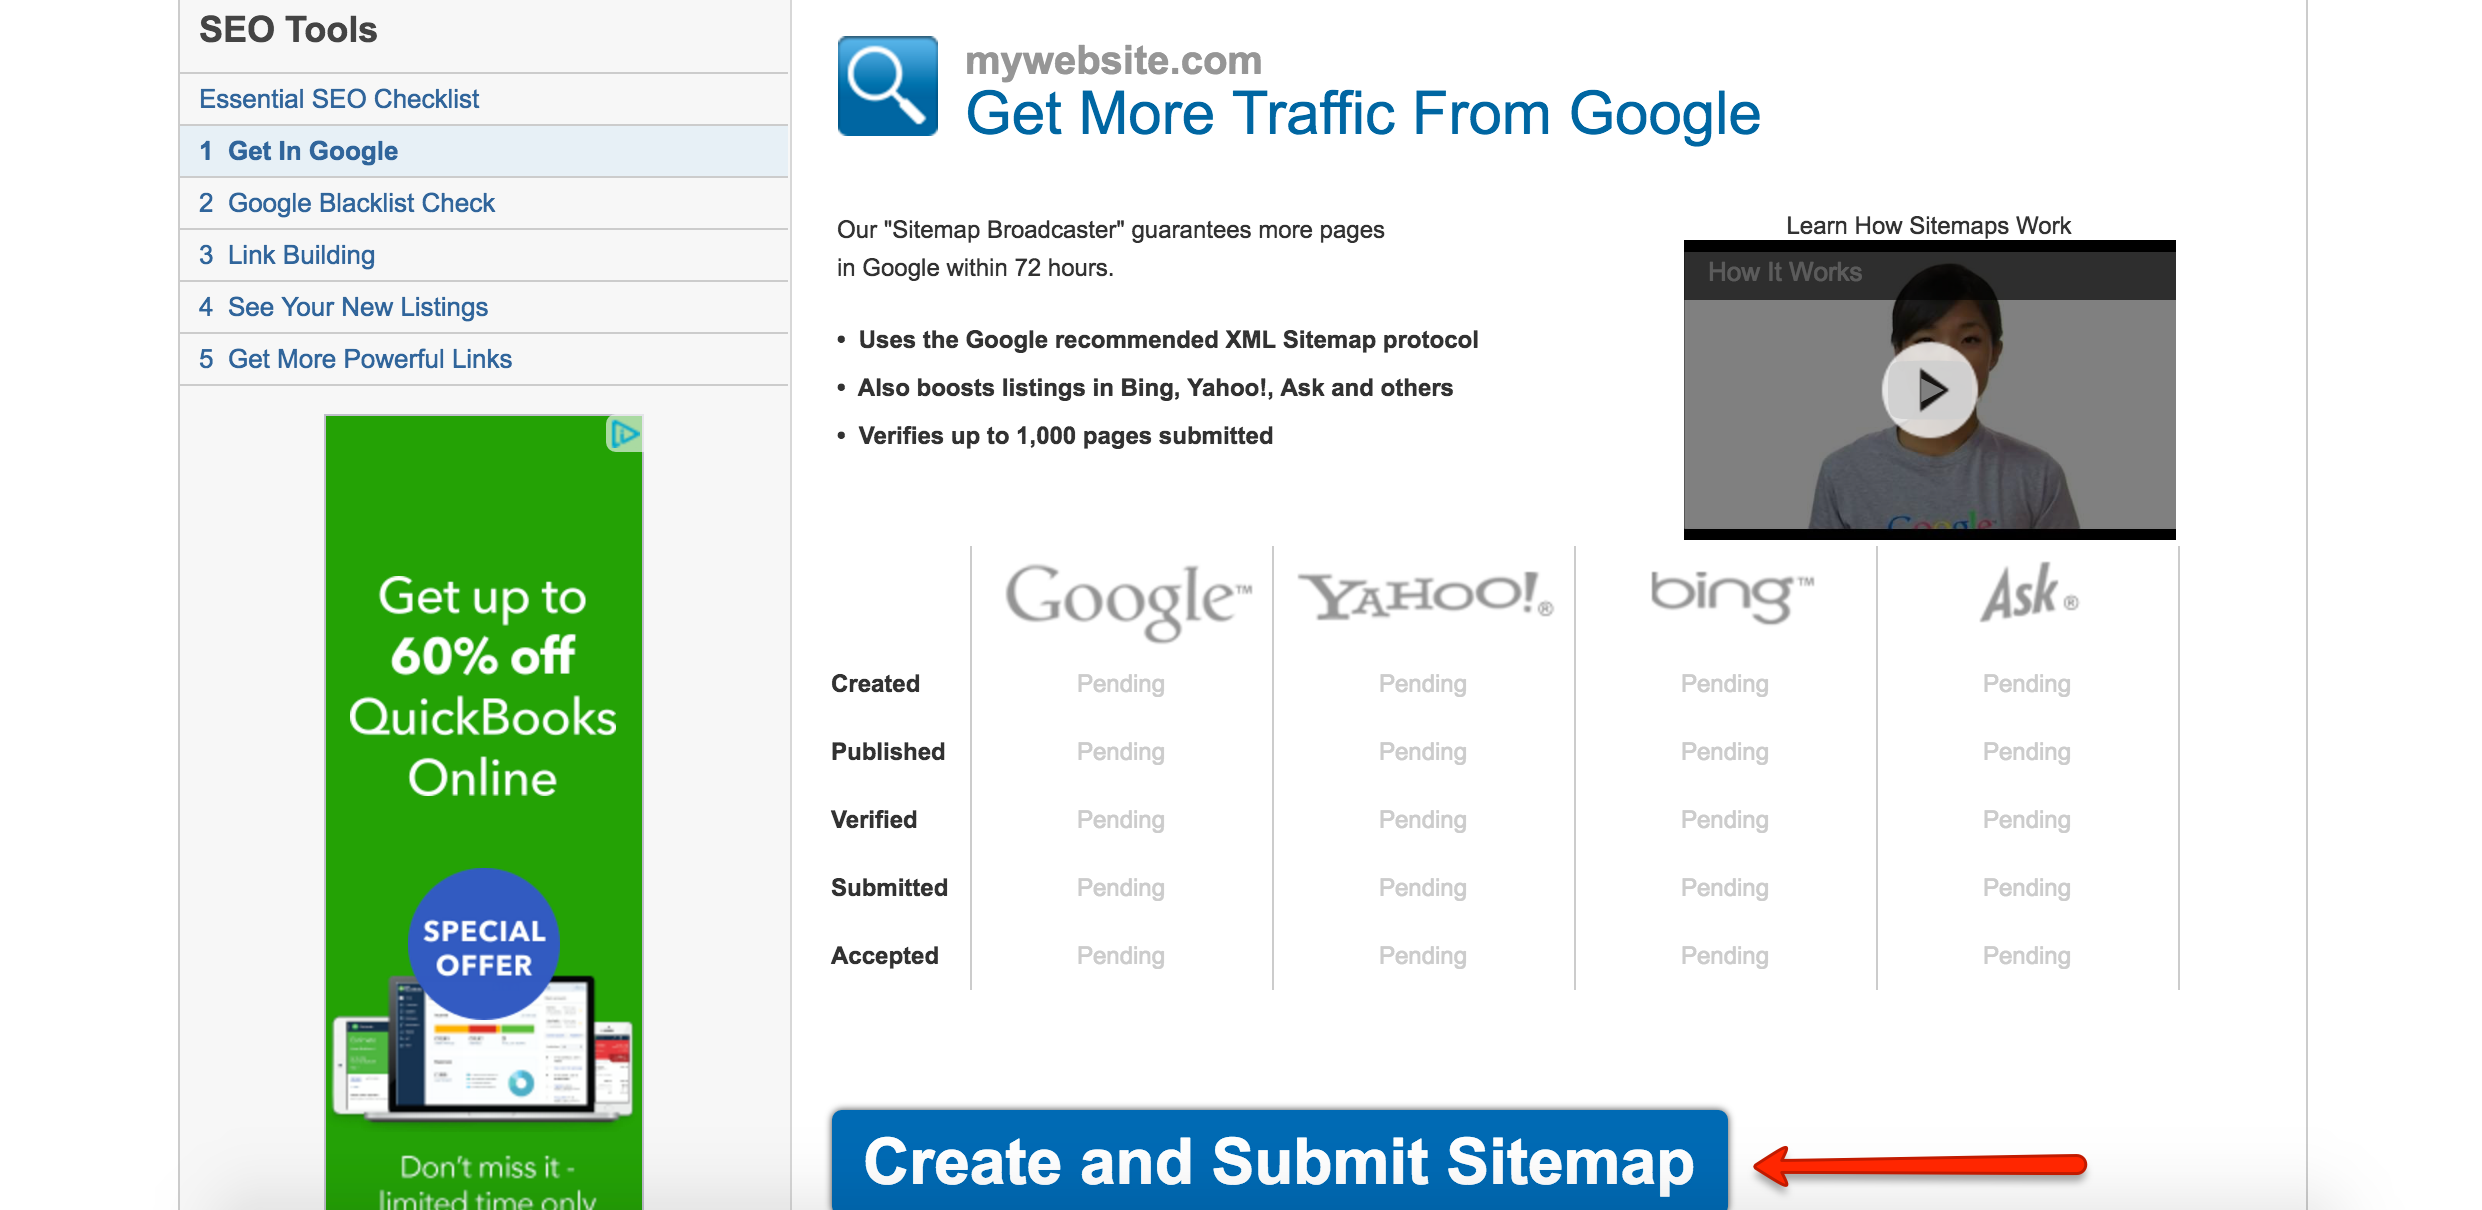 Get More Traffic from Google Search Engines via Jolly Leaf